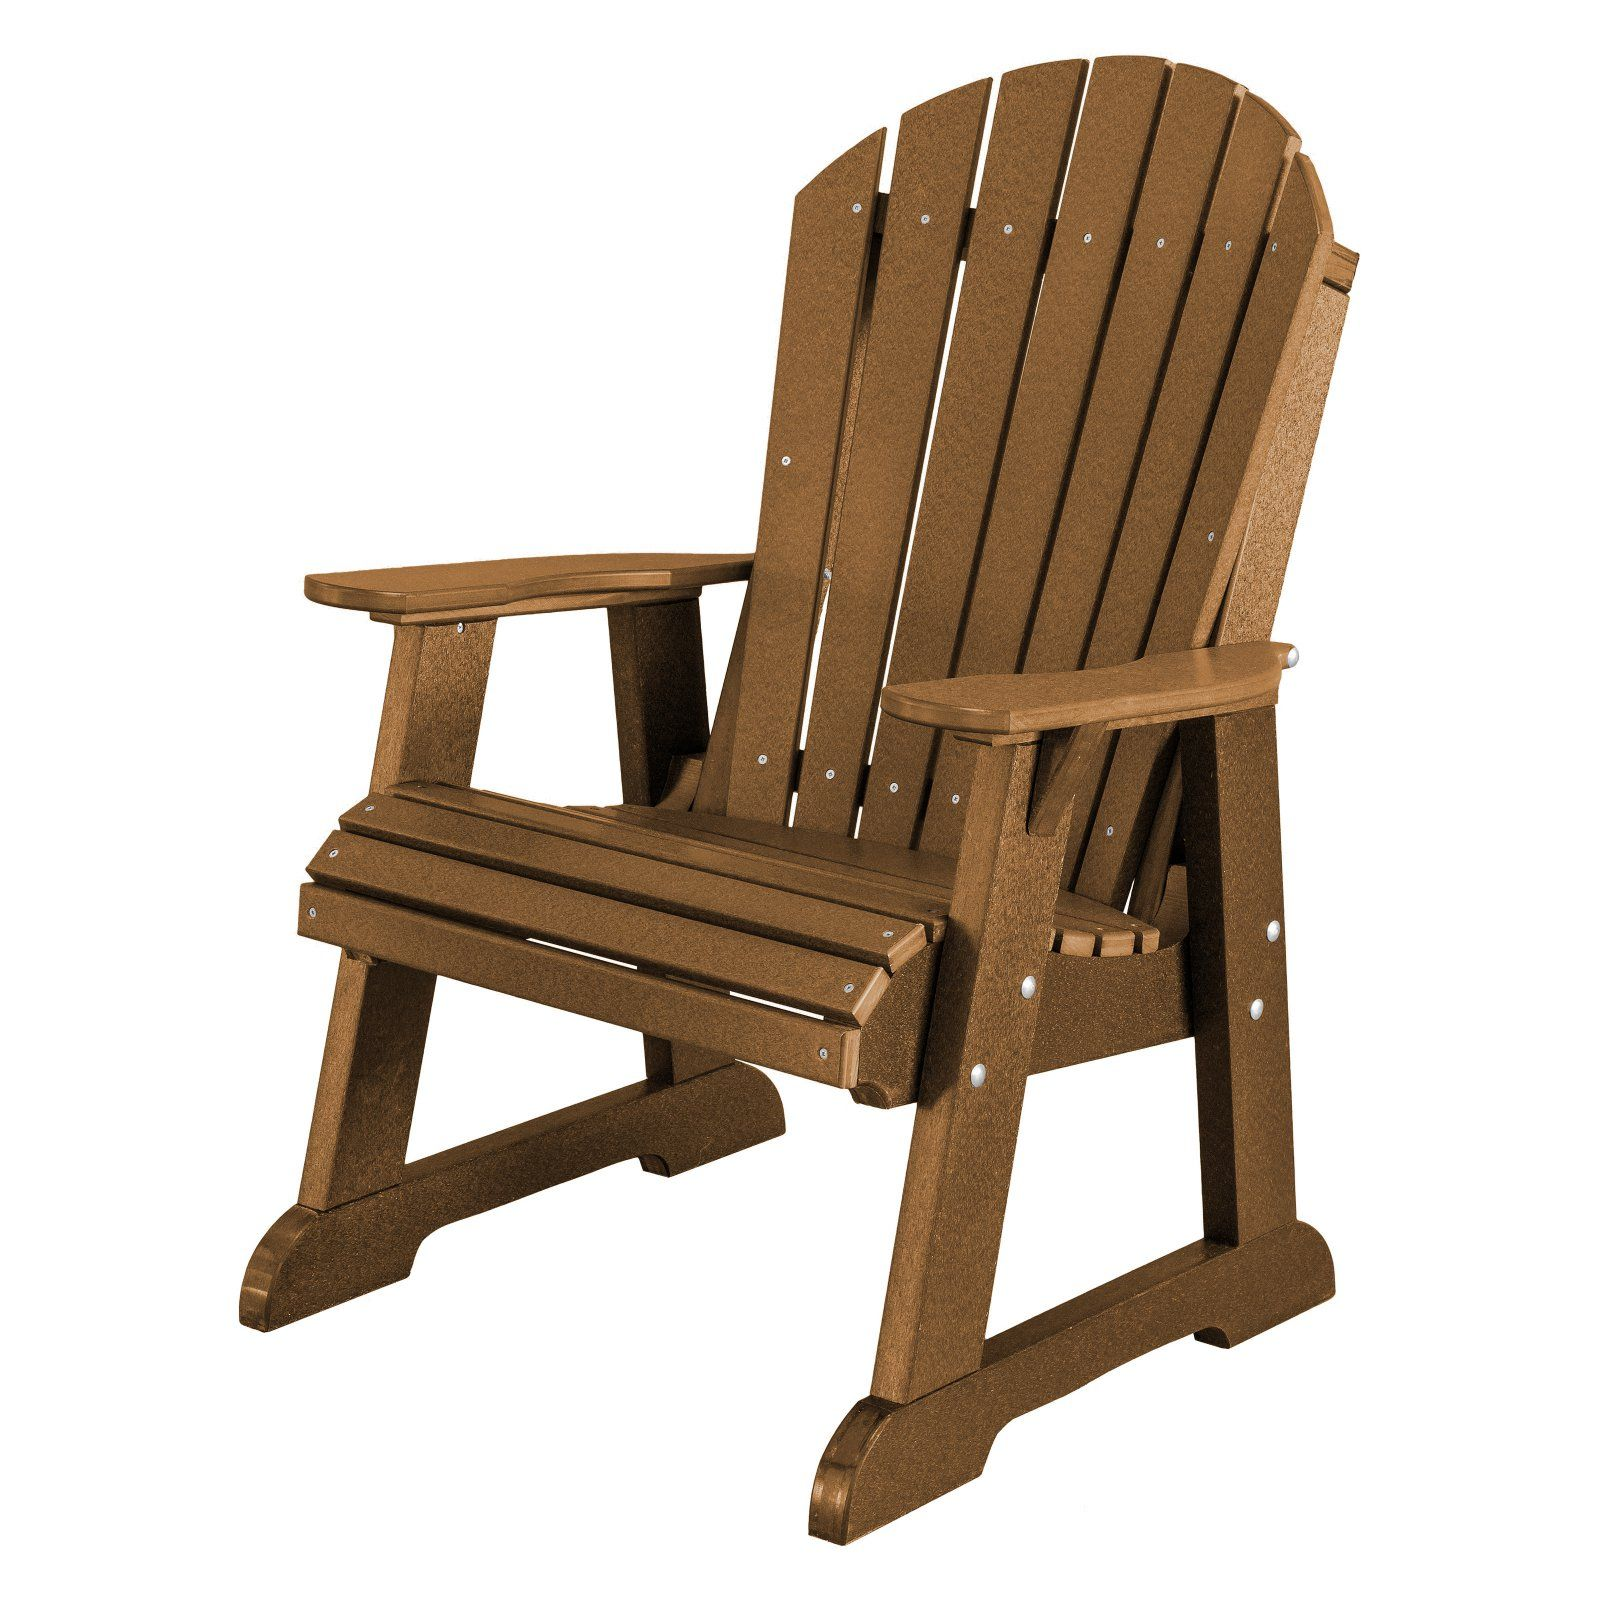 Superb Outdoor Wildridge Heritage High Fan Back Adirondack Chair Andrewgaddart Wooden Chair Designs For Living Room Andrewgaddartcom